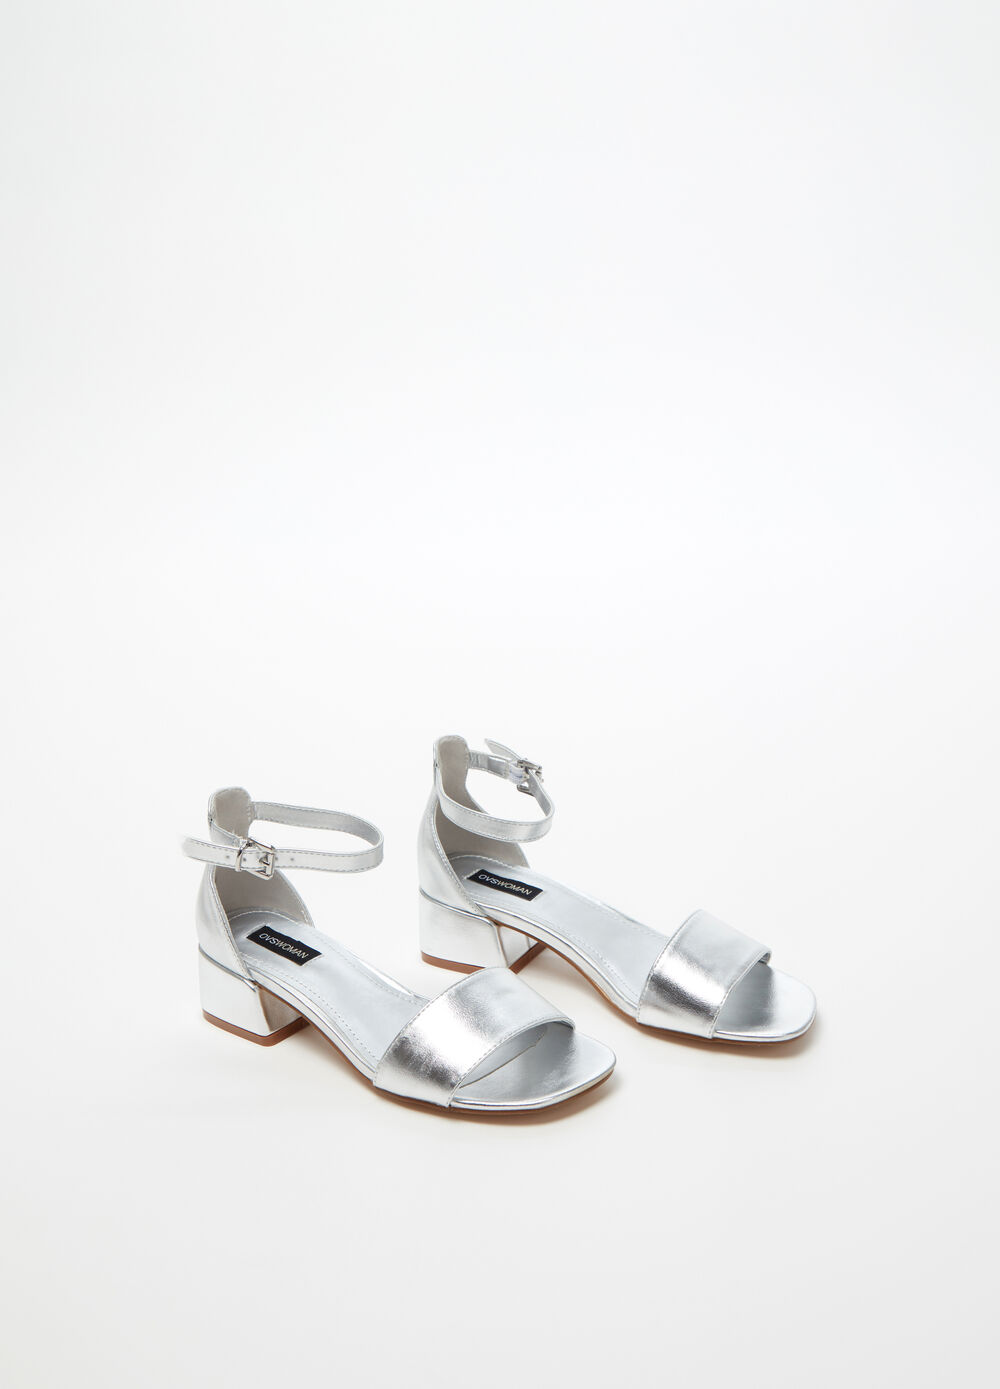 Sandals with shiny-effect strap